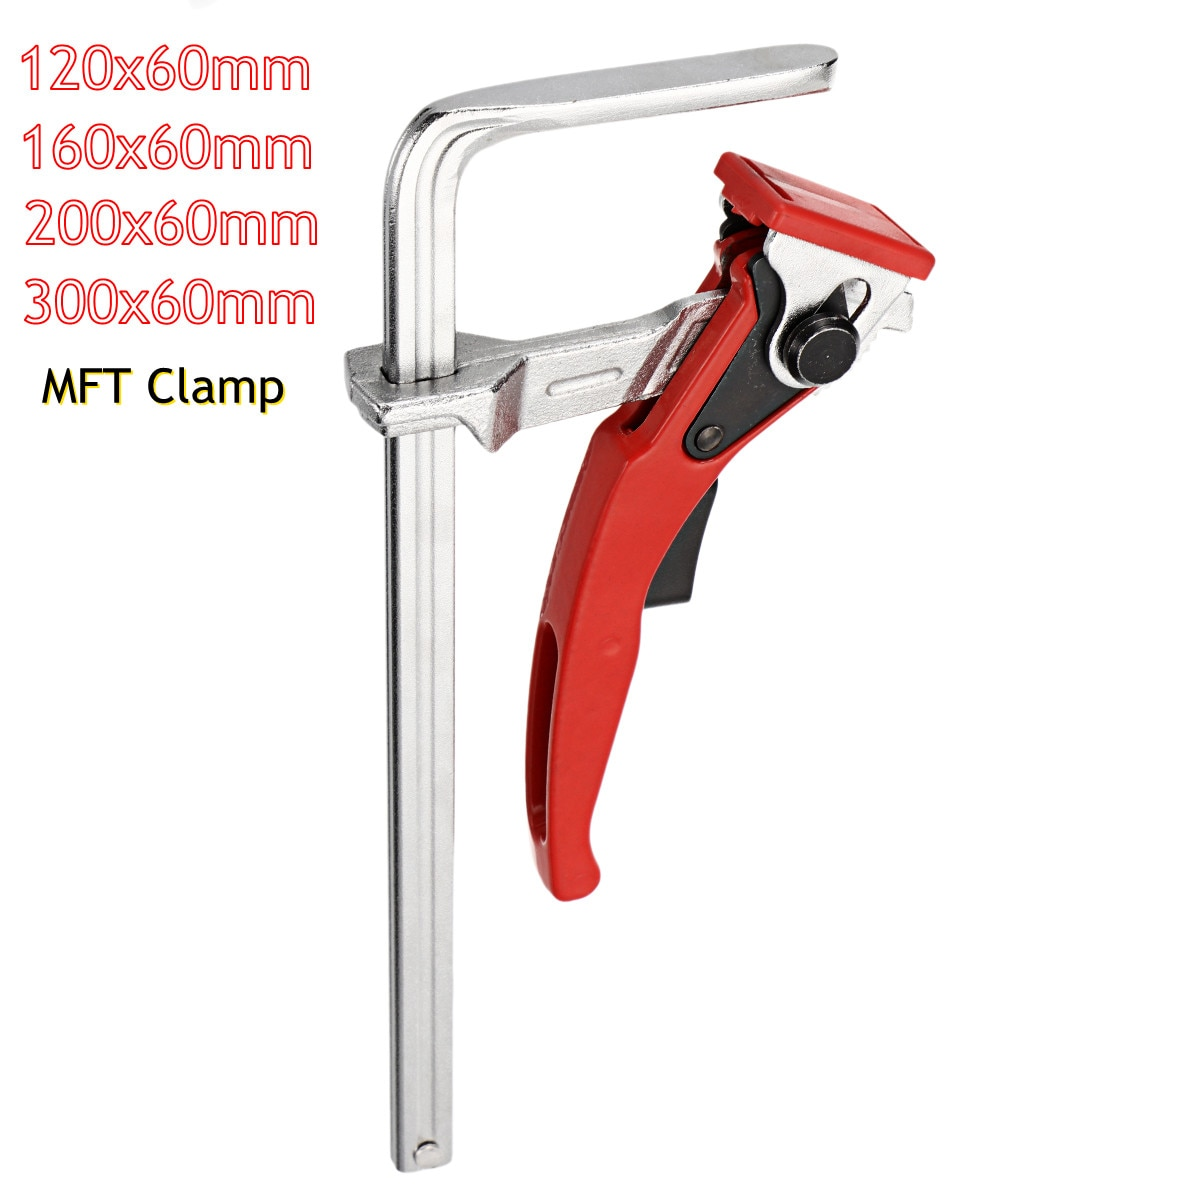 Quick Guide Rail Clamp Different Sizes F Clamp MFT Clamp for MFT and Guide Rail System Hand Tool Woodworking DIY